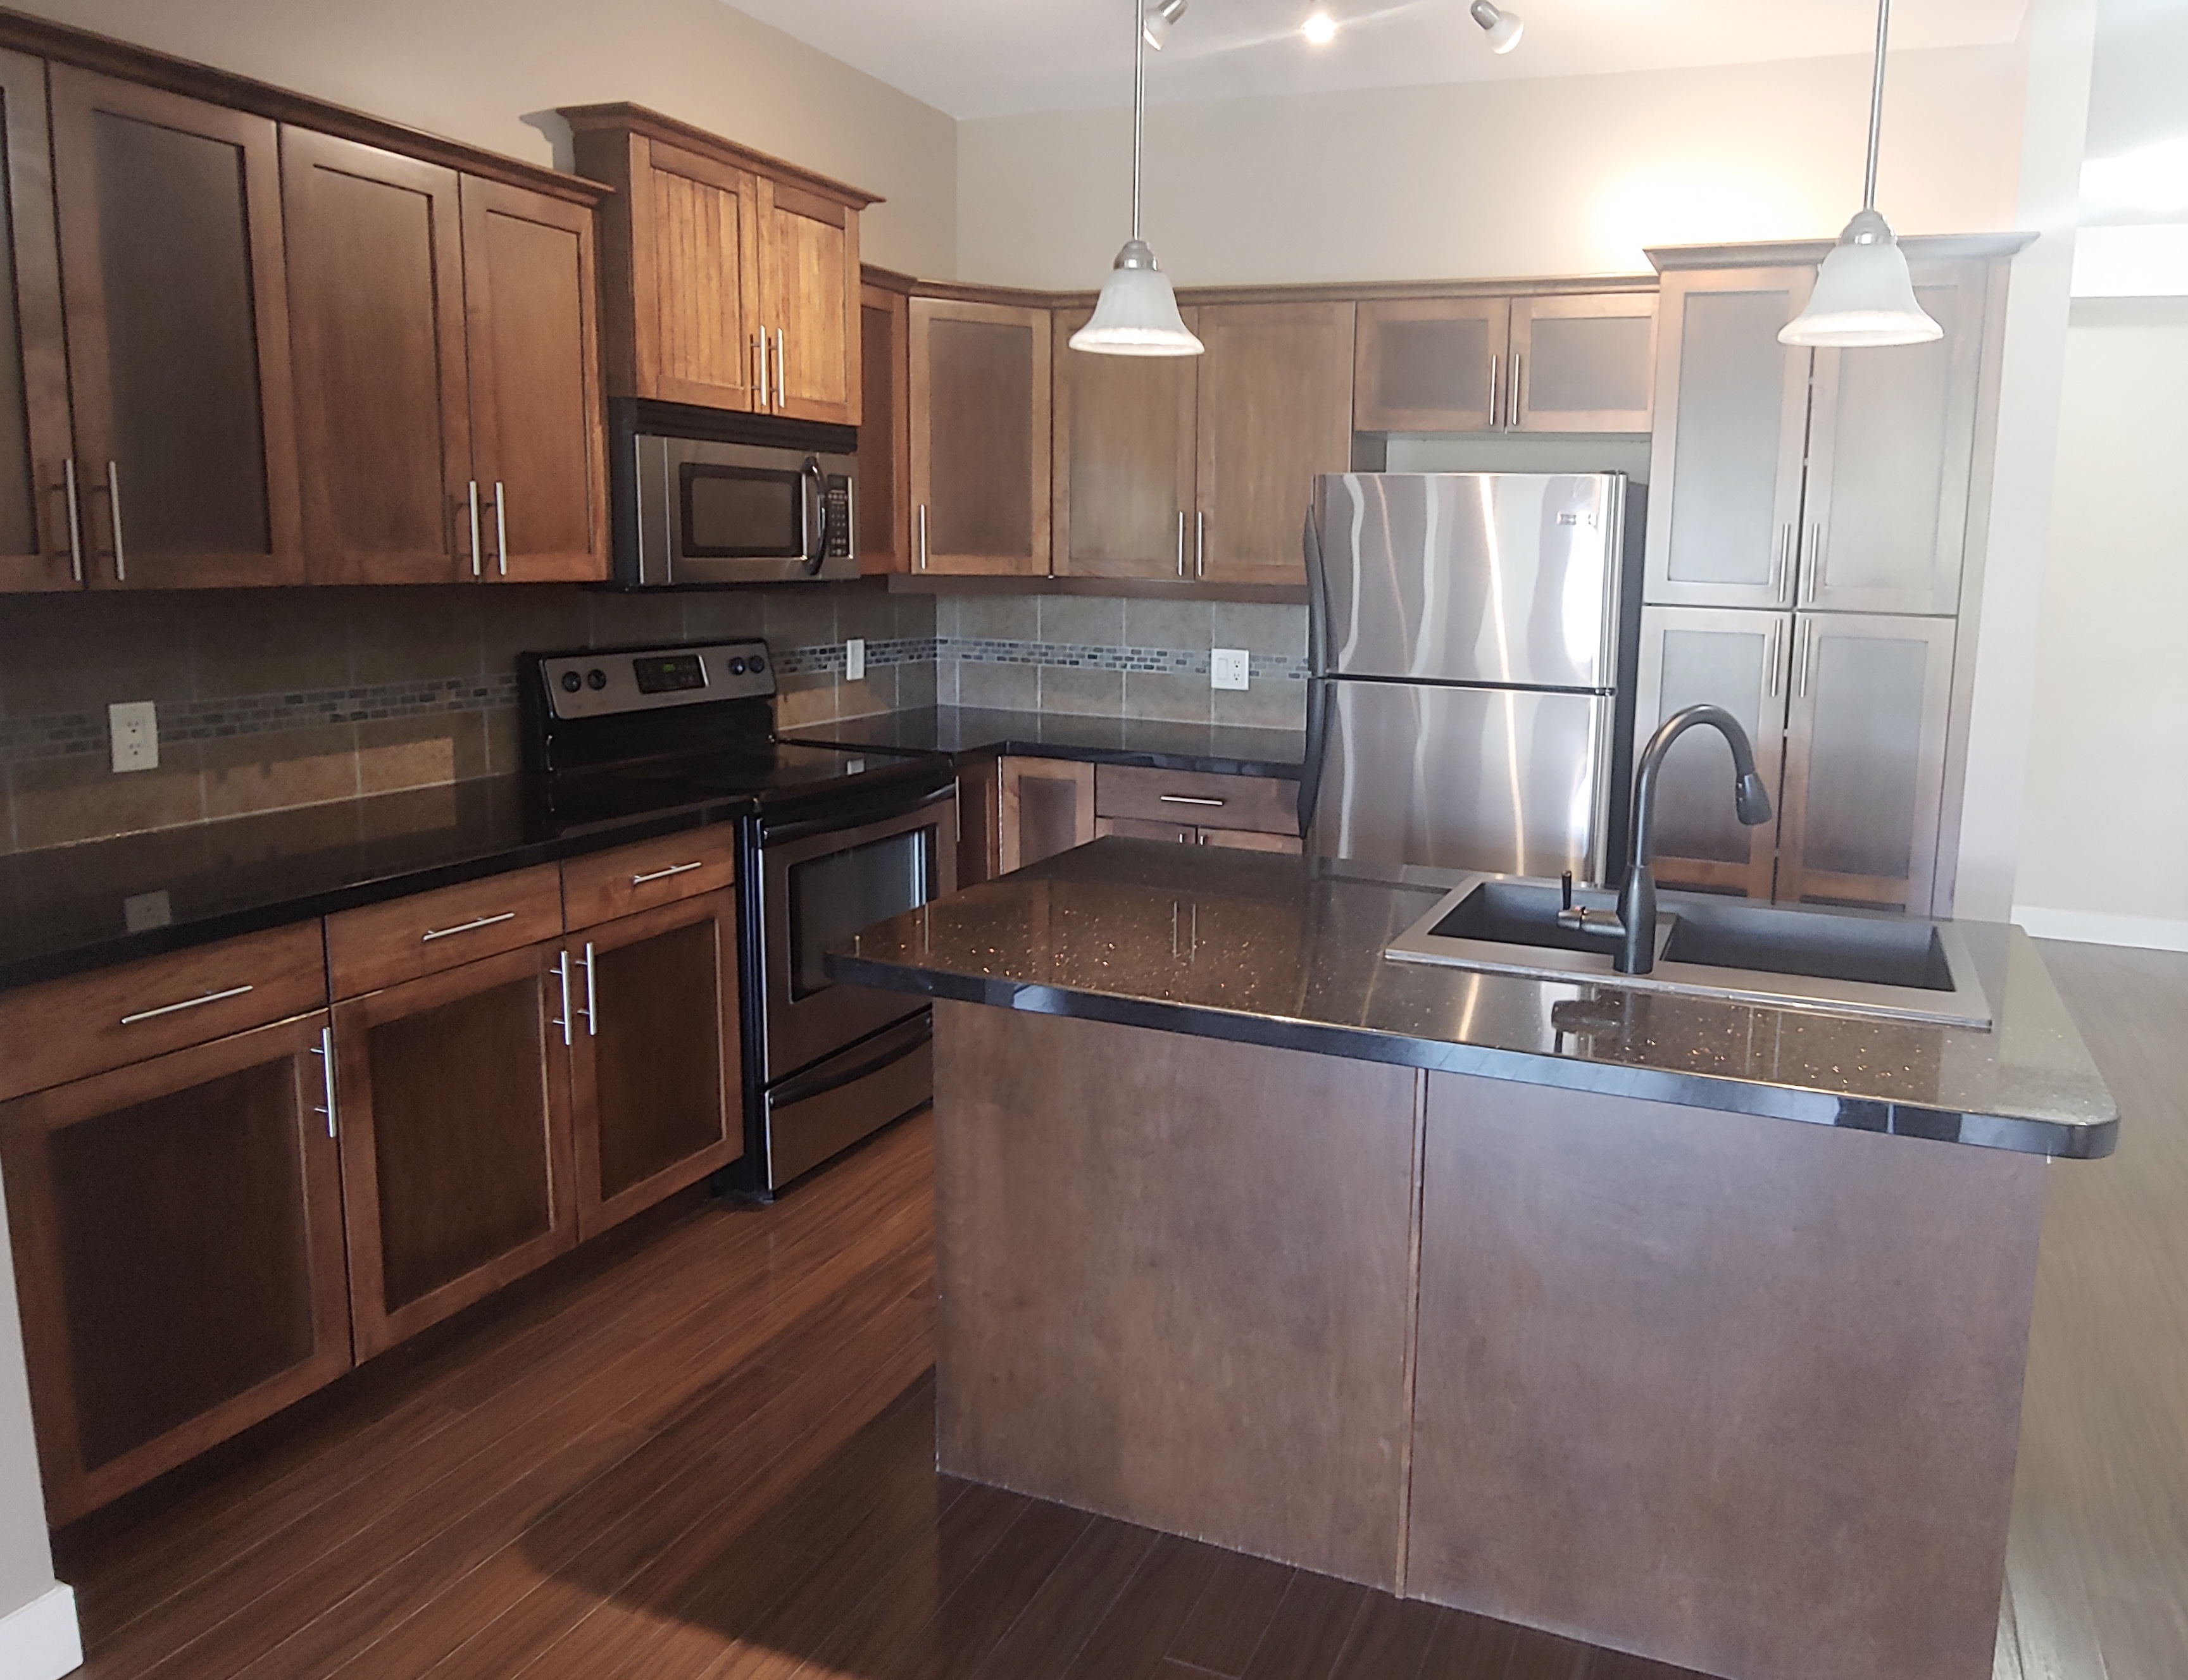 #412 - 3545 Carrington Road, West Kelowna, BC - $2,000